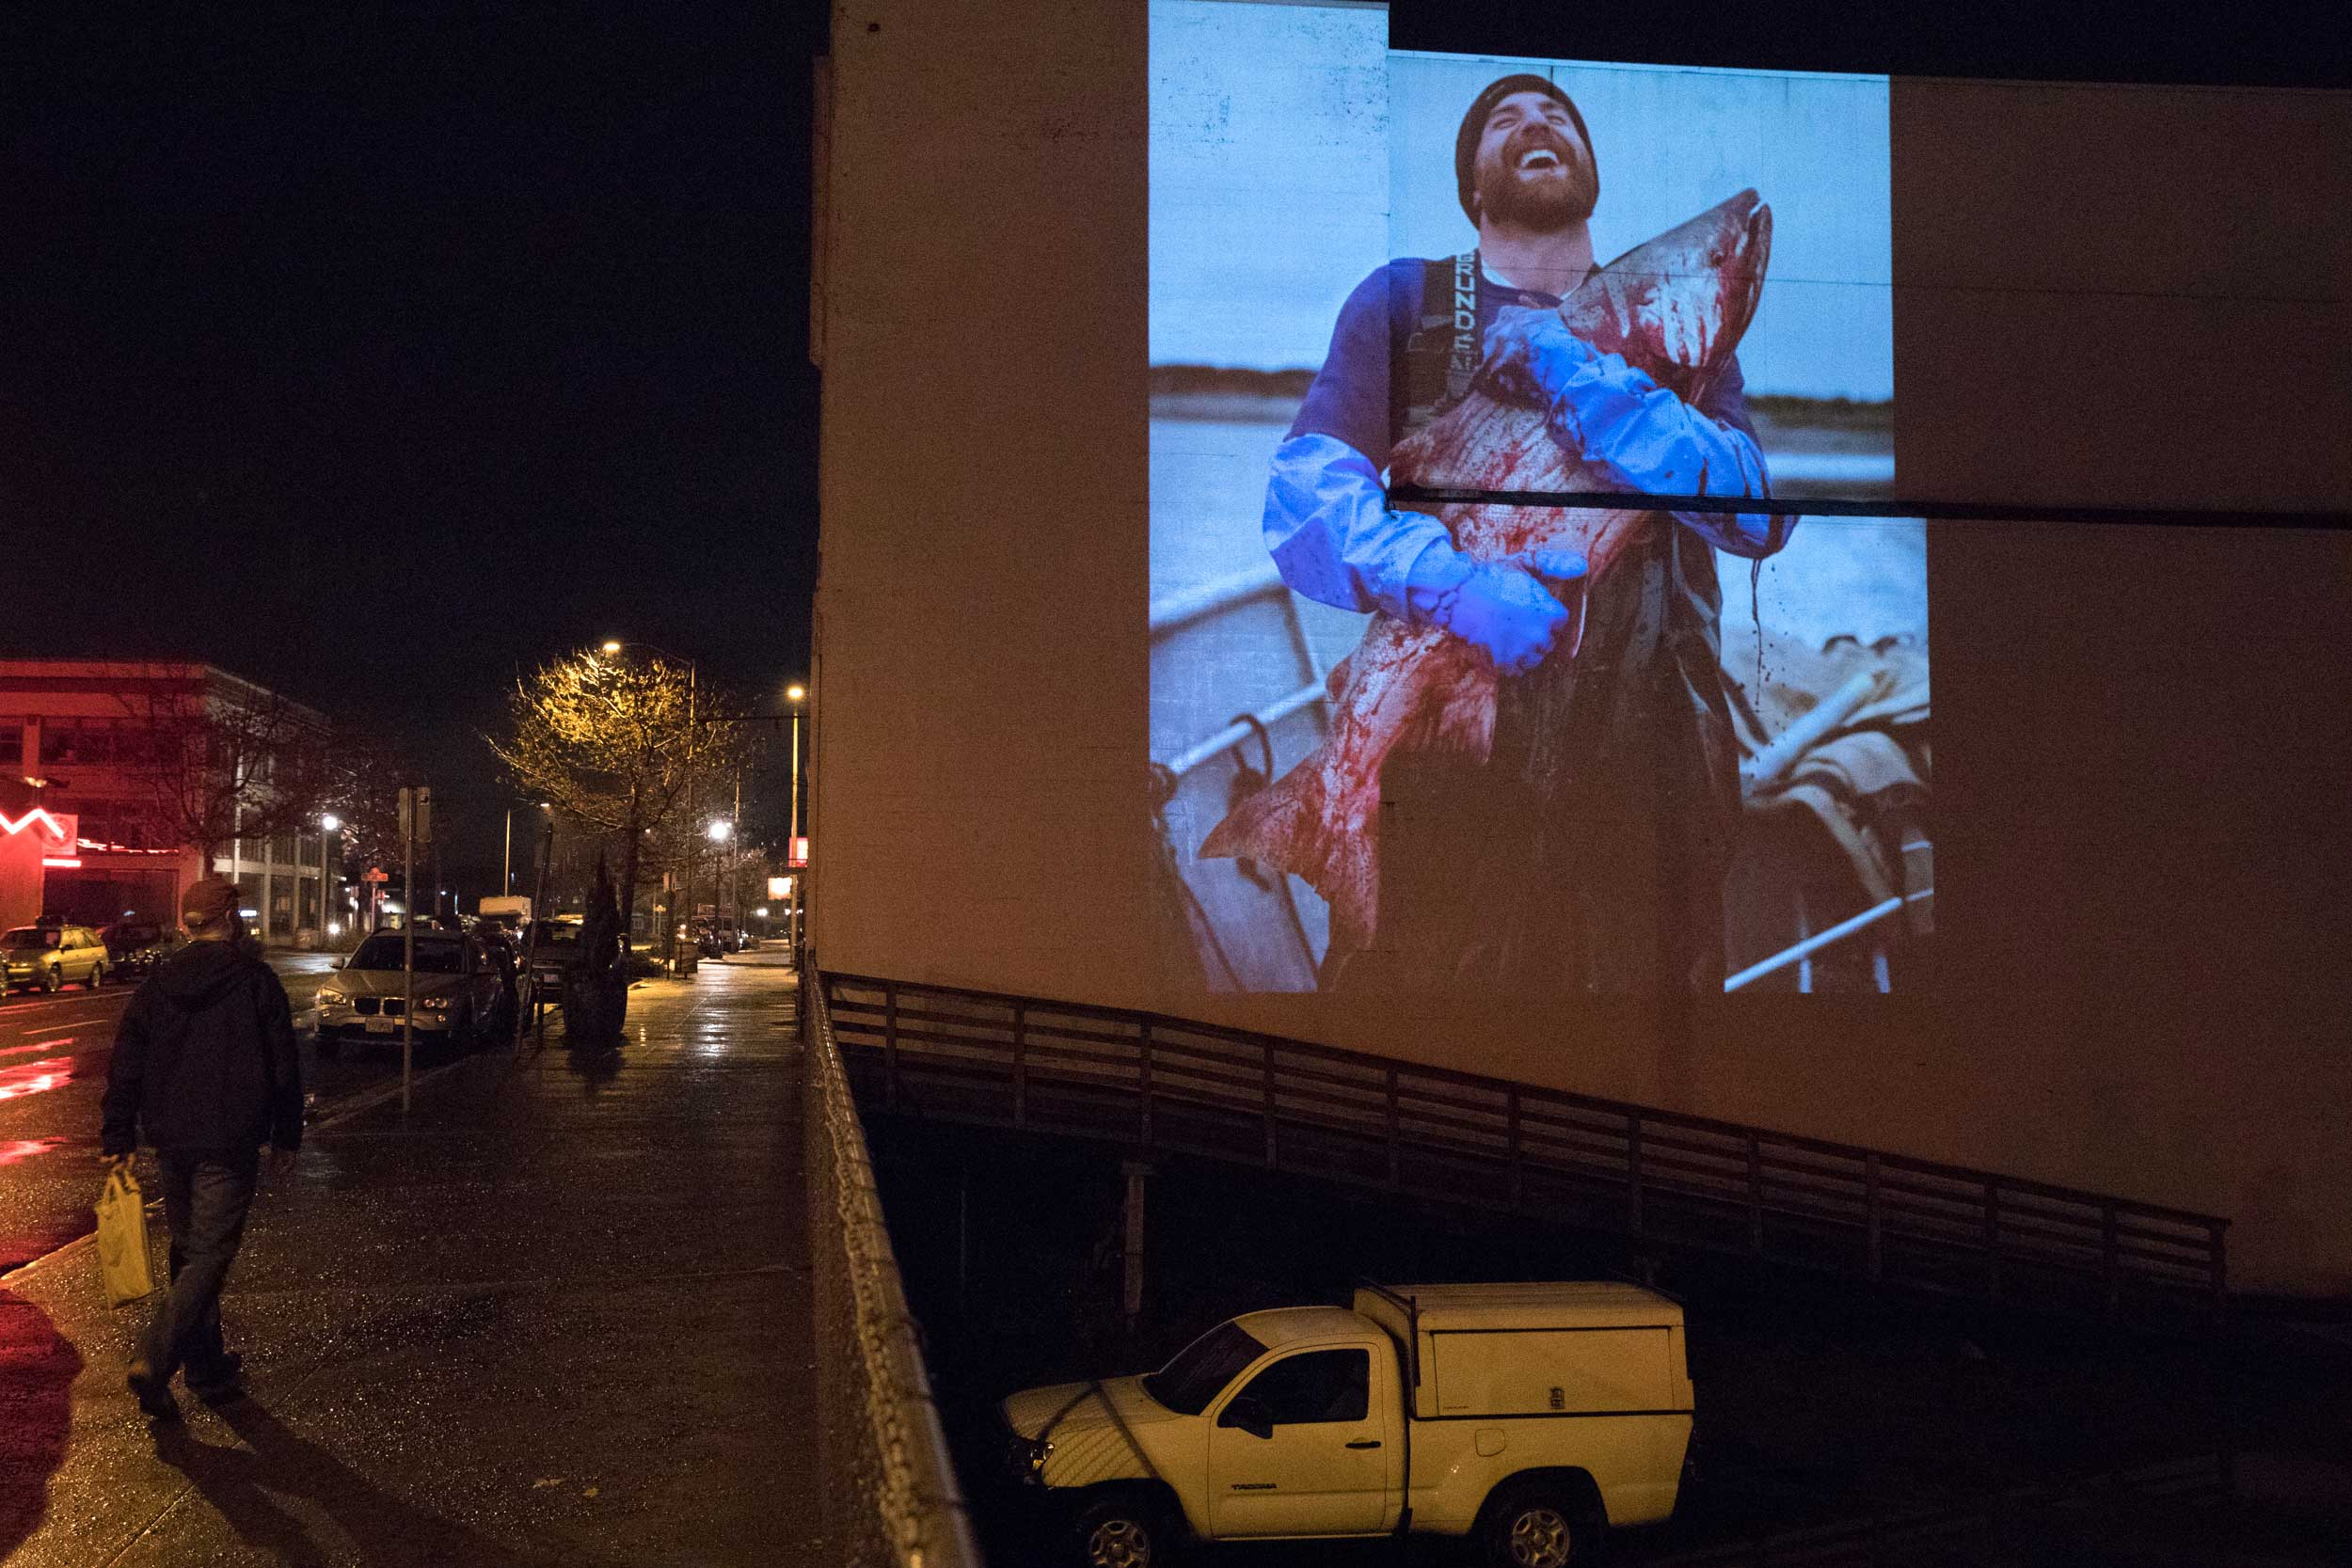 A photograph made by photographer Corey Arnold in Bristol Bay, Alaska, is seen projected on the side of a building along Marine Drive in Astoria.